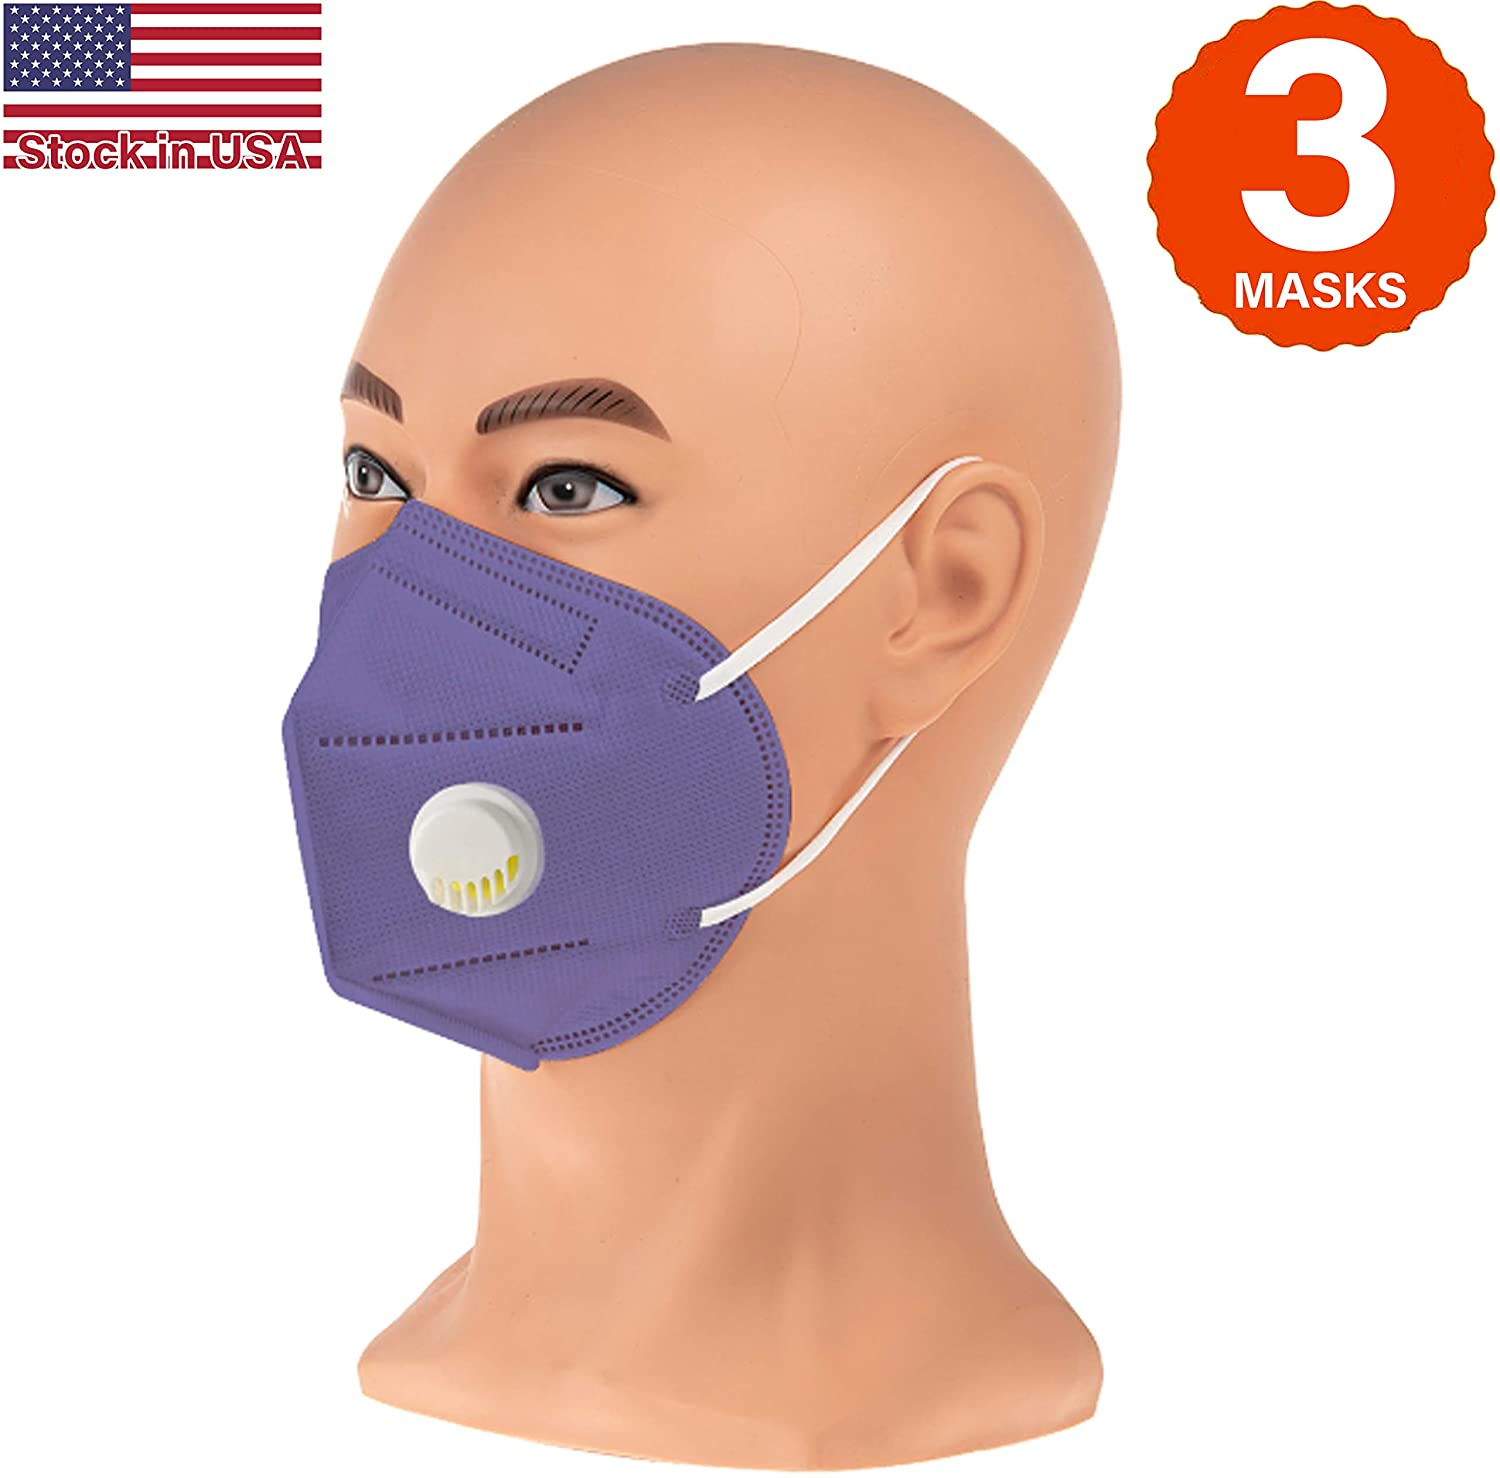 COOLINKO Purple Disposable Face Masks 5-Layers>95% Effectiveness Breathable Non-Woven with Nose Wire and Ear Loops - 5-Ply Protective Cotton Mouth Muffle Guard Covering Mask (3 Masks)